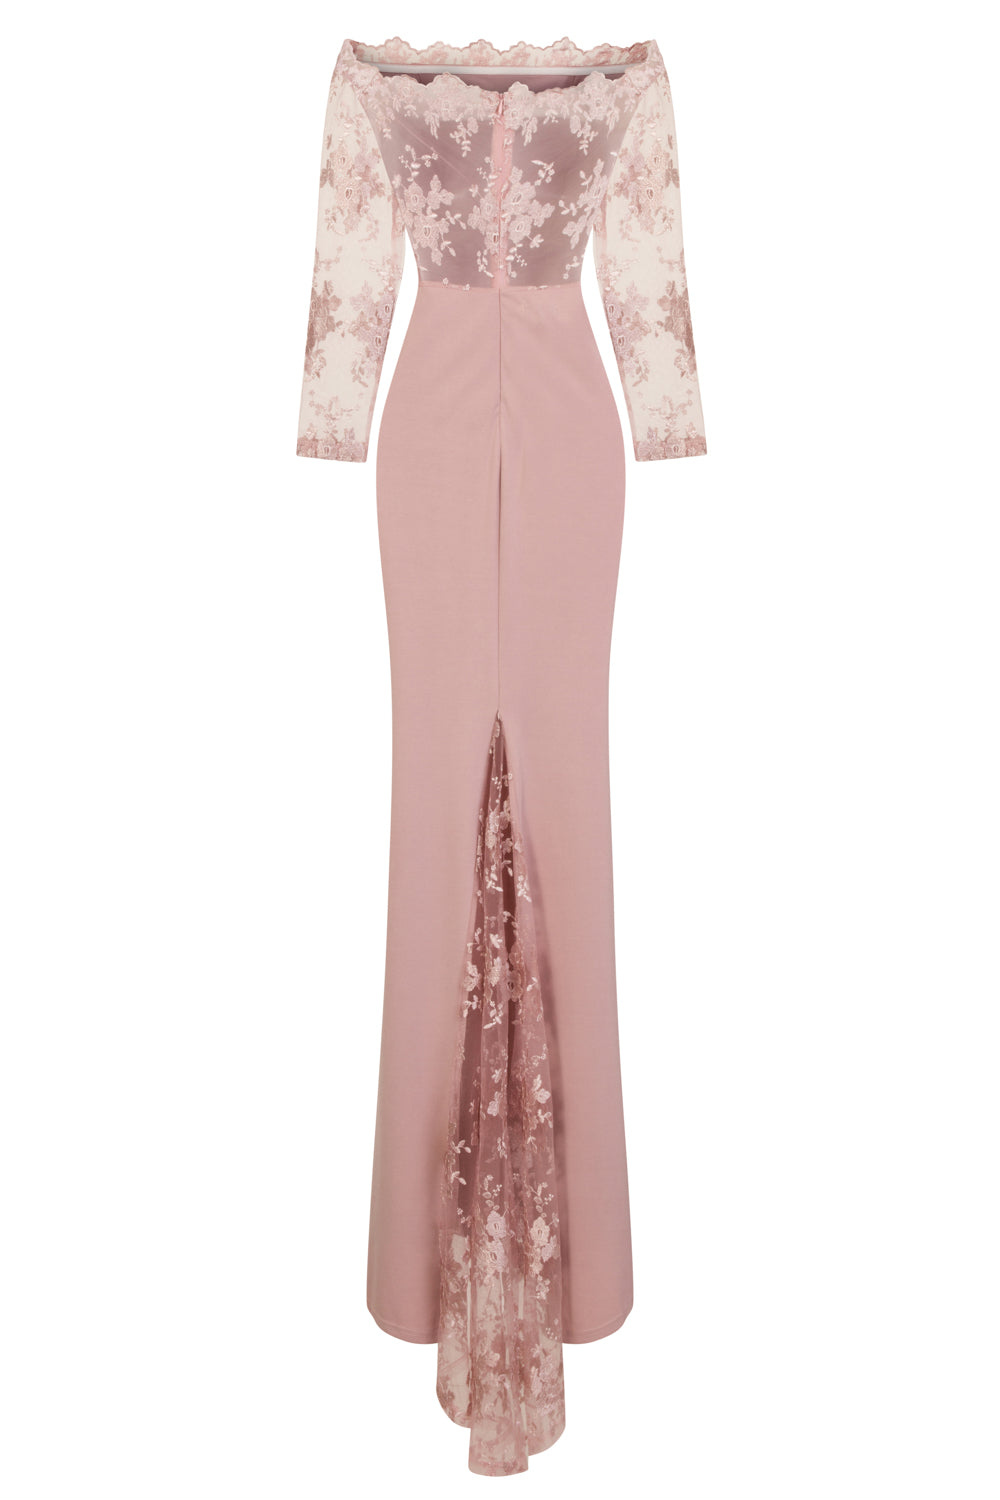 Meghan Mauve Off The Shoulder Bardot Lace Fishtail Maxi Dress